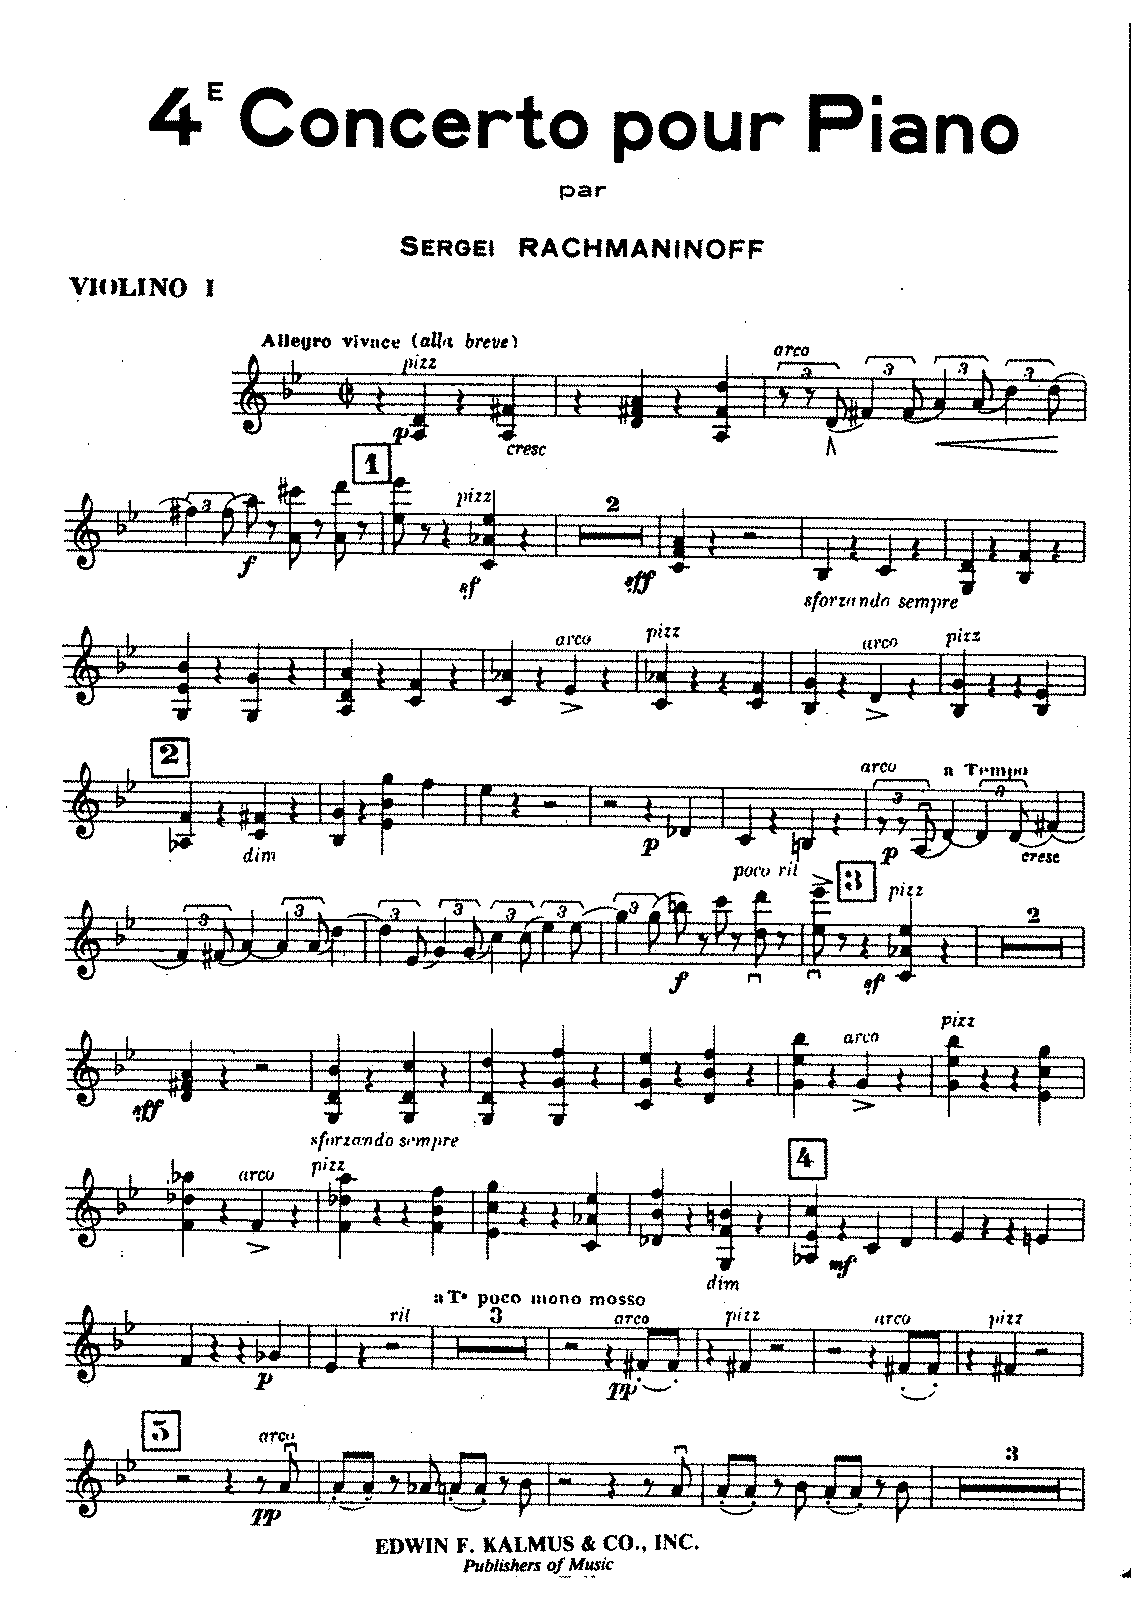 PMLP08351-RACHMANINOFF 4th CONCERTO SET OF PARTS.pdf